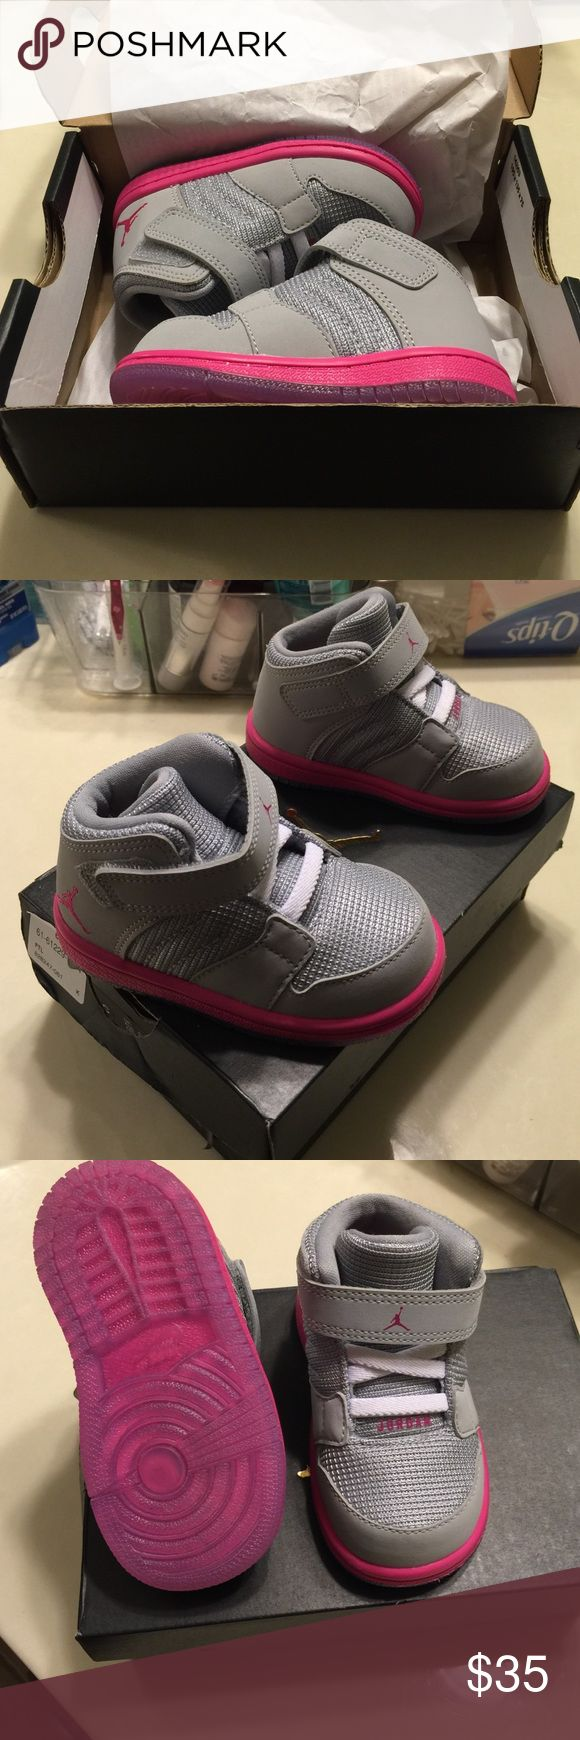 Brand new out of the box girl Jordans with box Toddler High top Jordans for girls. Jordan1 Flight4 size 5c pink and grey! Clean! Haven't worn! Jordan Shoes Sneakers